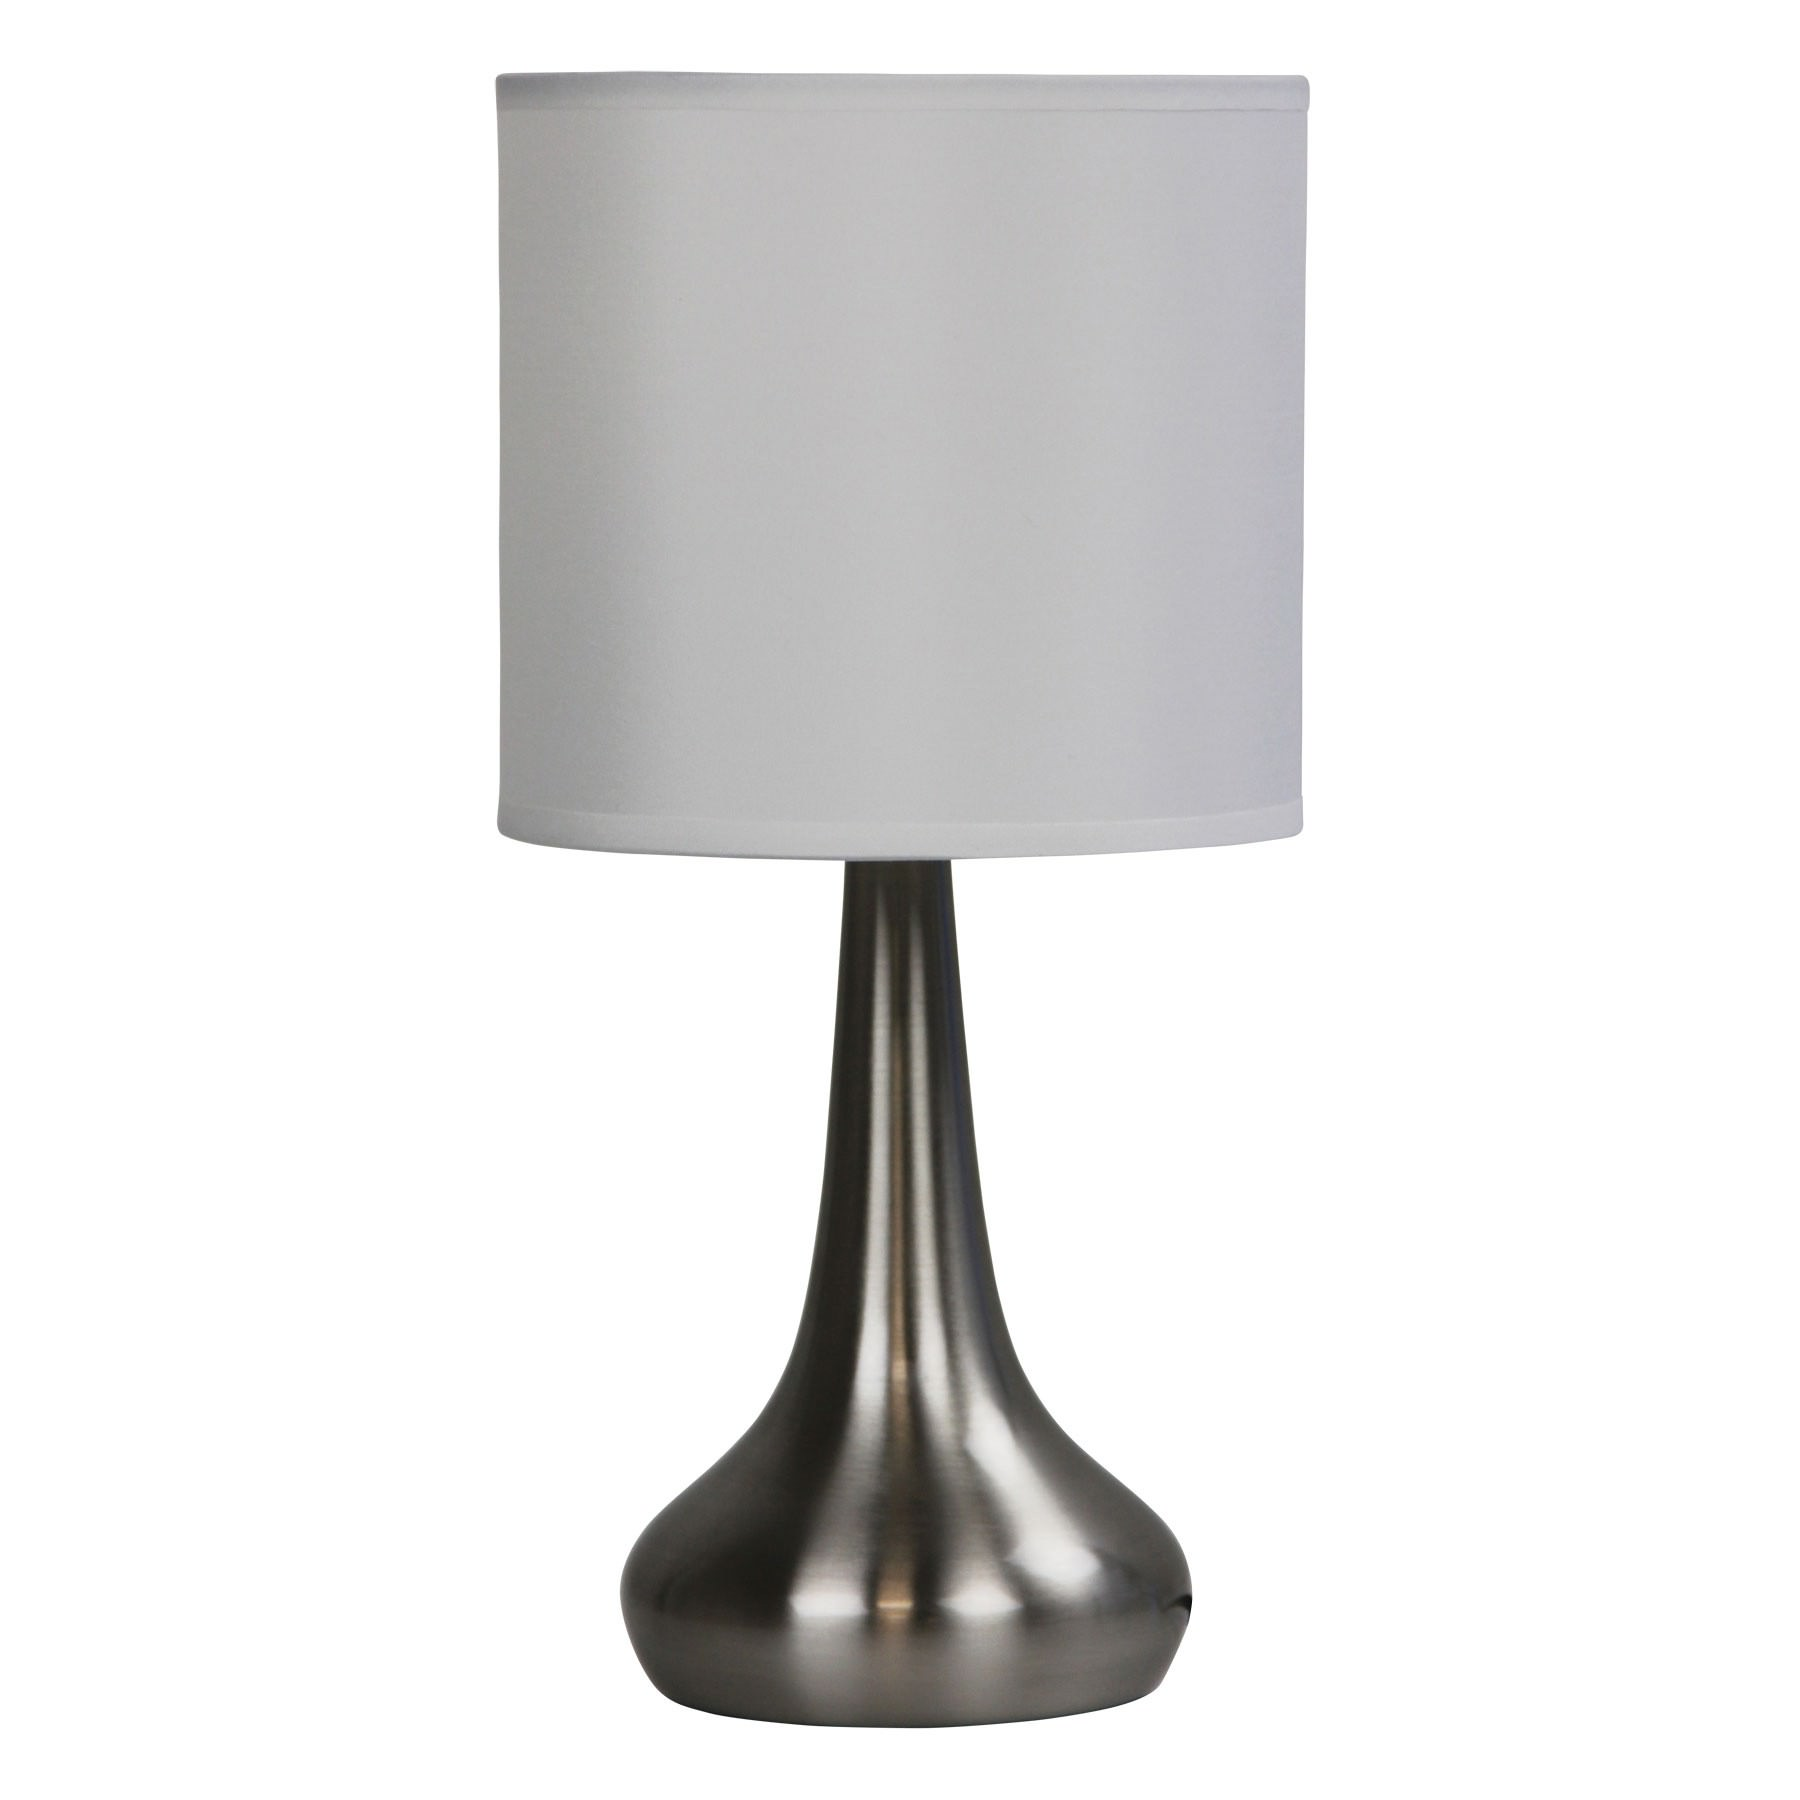 Lola 3 Stage Touch Table Lamp, Brushed Chrome